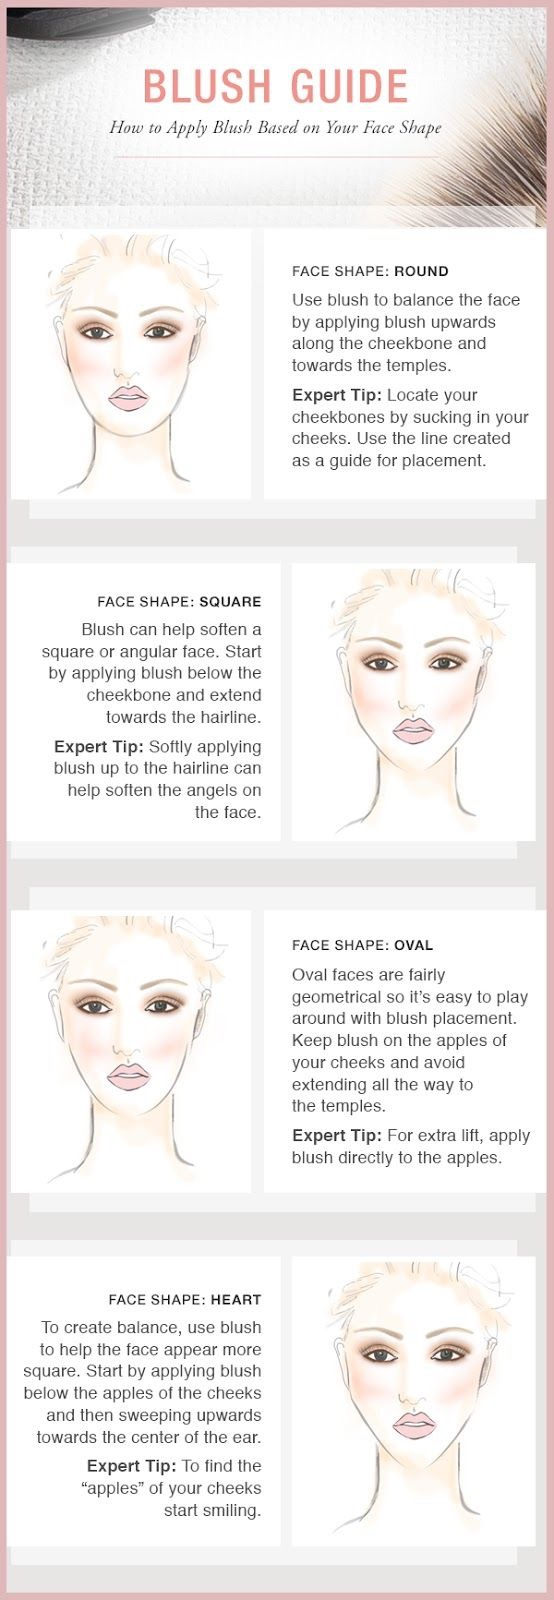 6 Blush Tips and Tricks That Will Change Your Life-and Cheeks-Forever